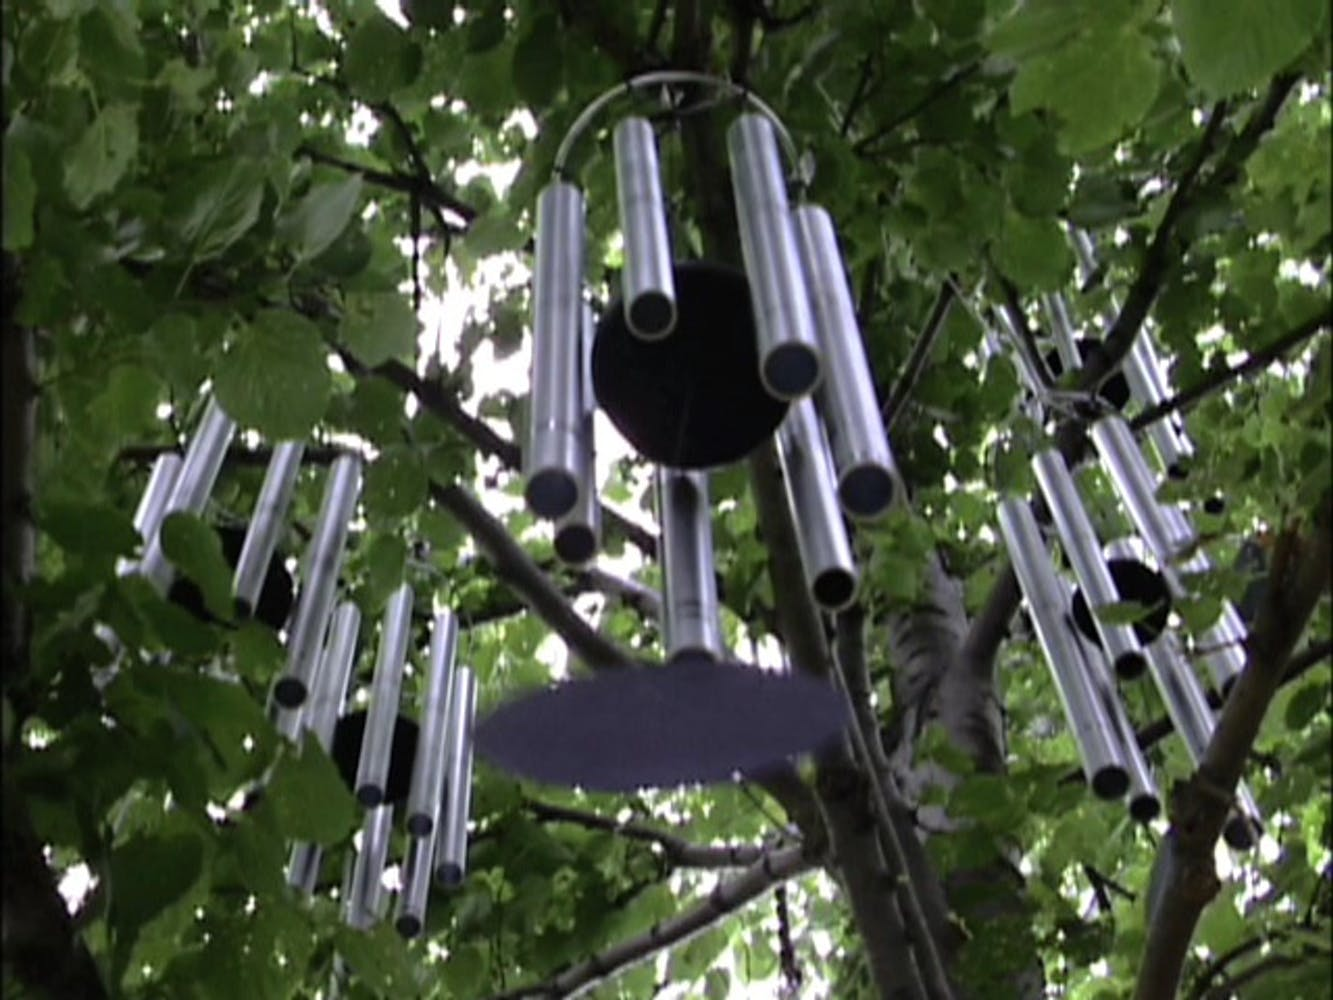 Wind Chime (After Dream) by Pierre Huyghe